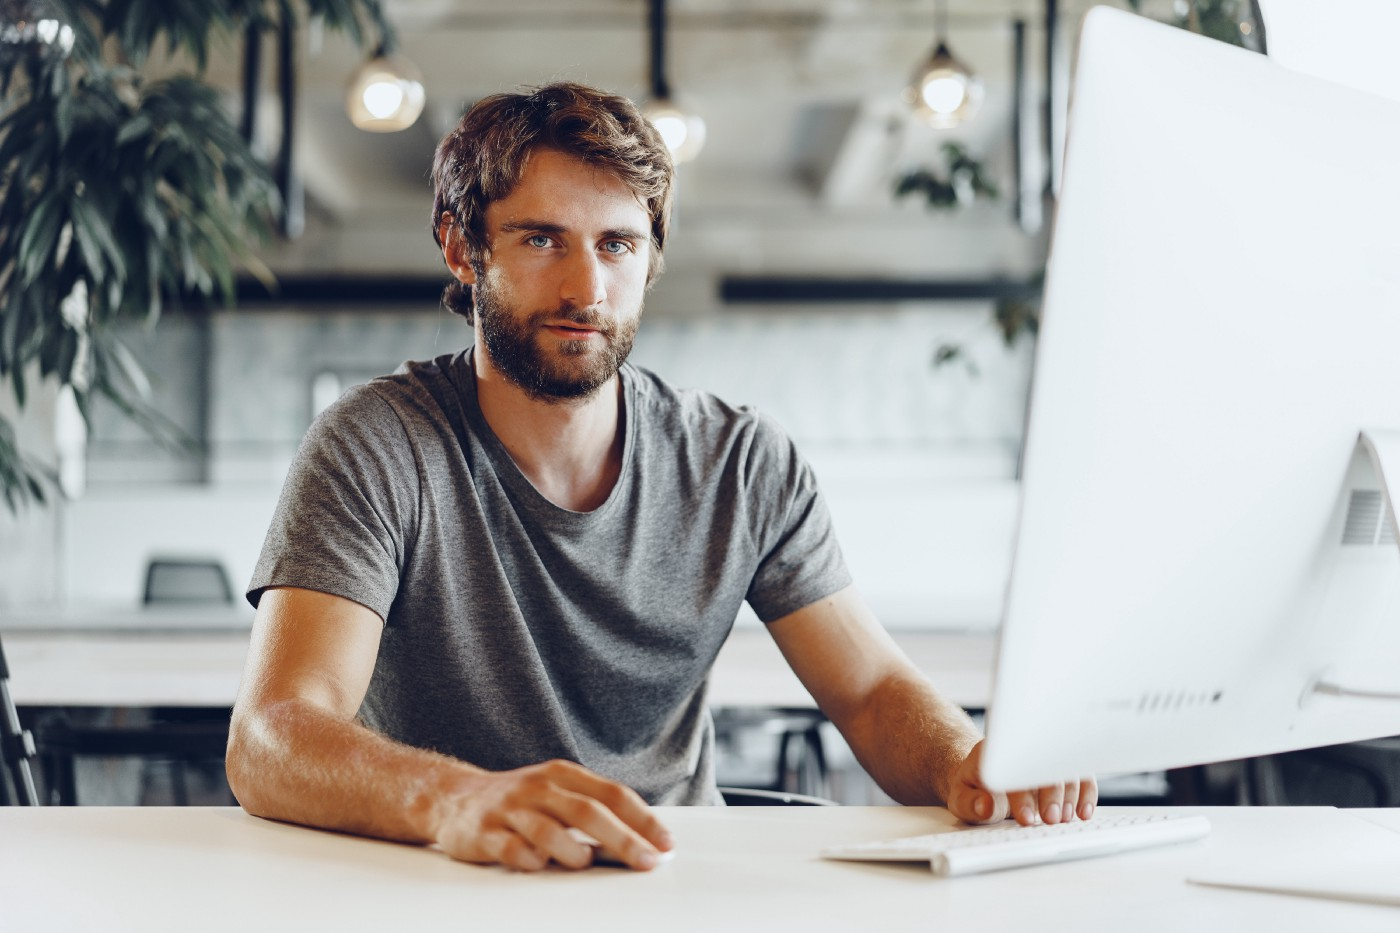 Contented male freelancer in grey t-shirt sitting at the computer with hand poised over the mouse, in a light, airy working space,